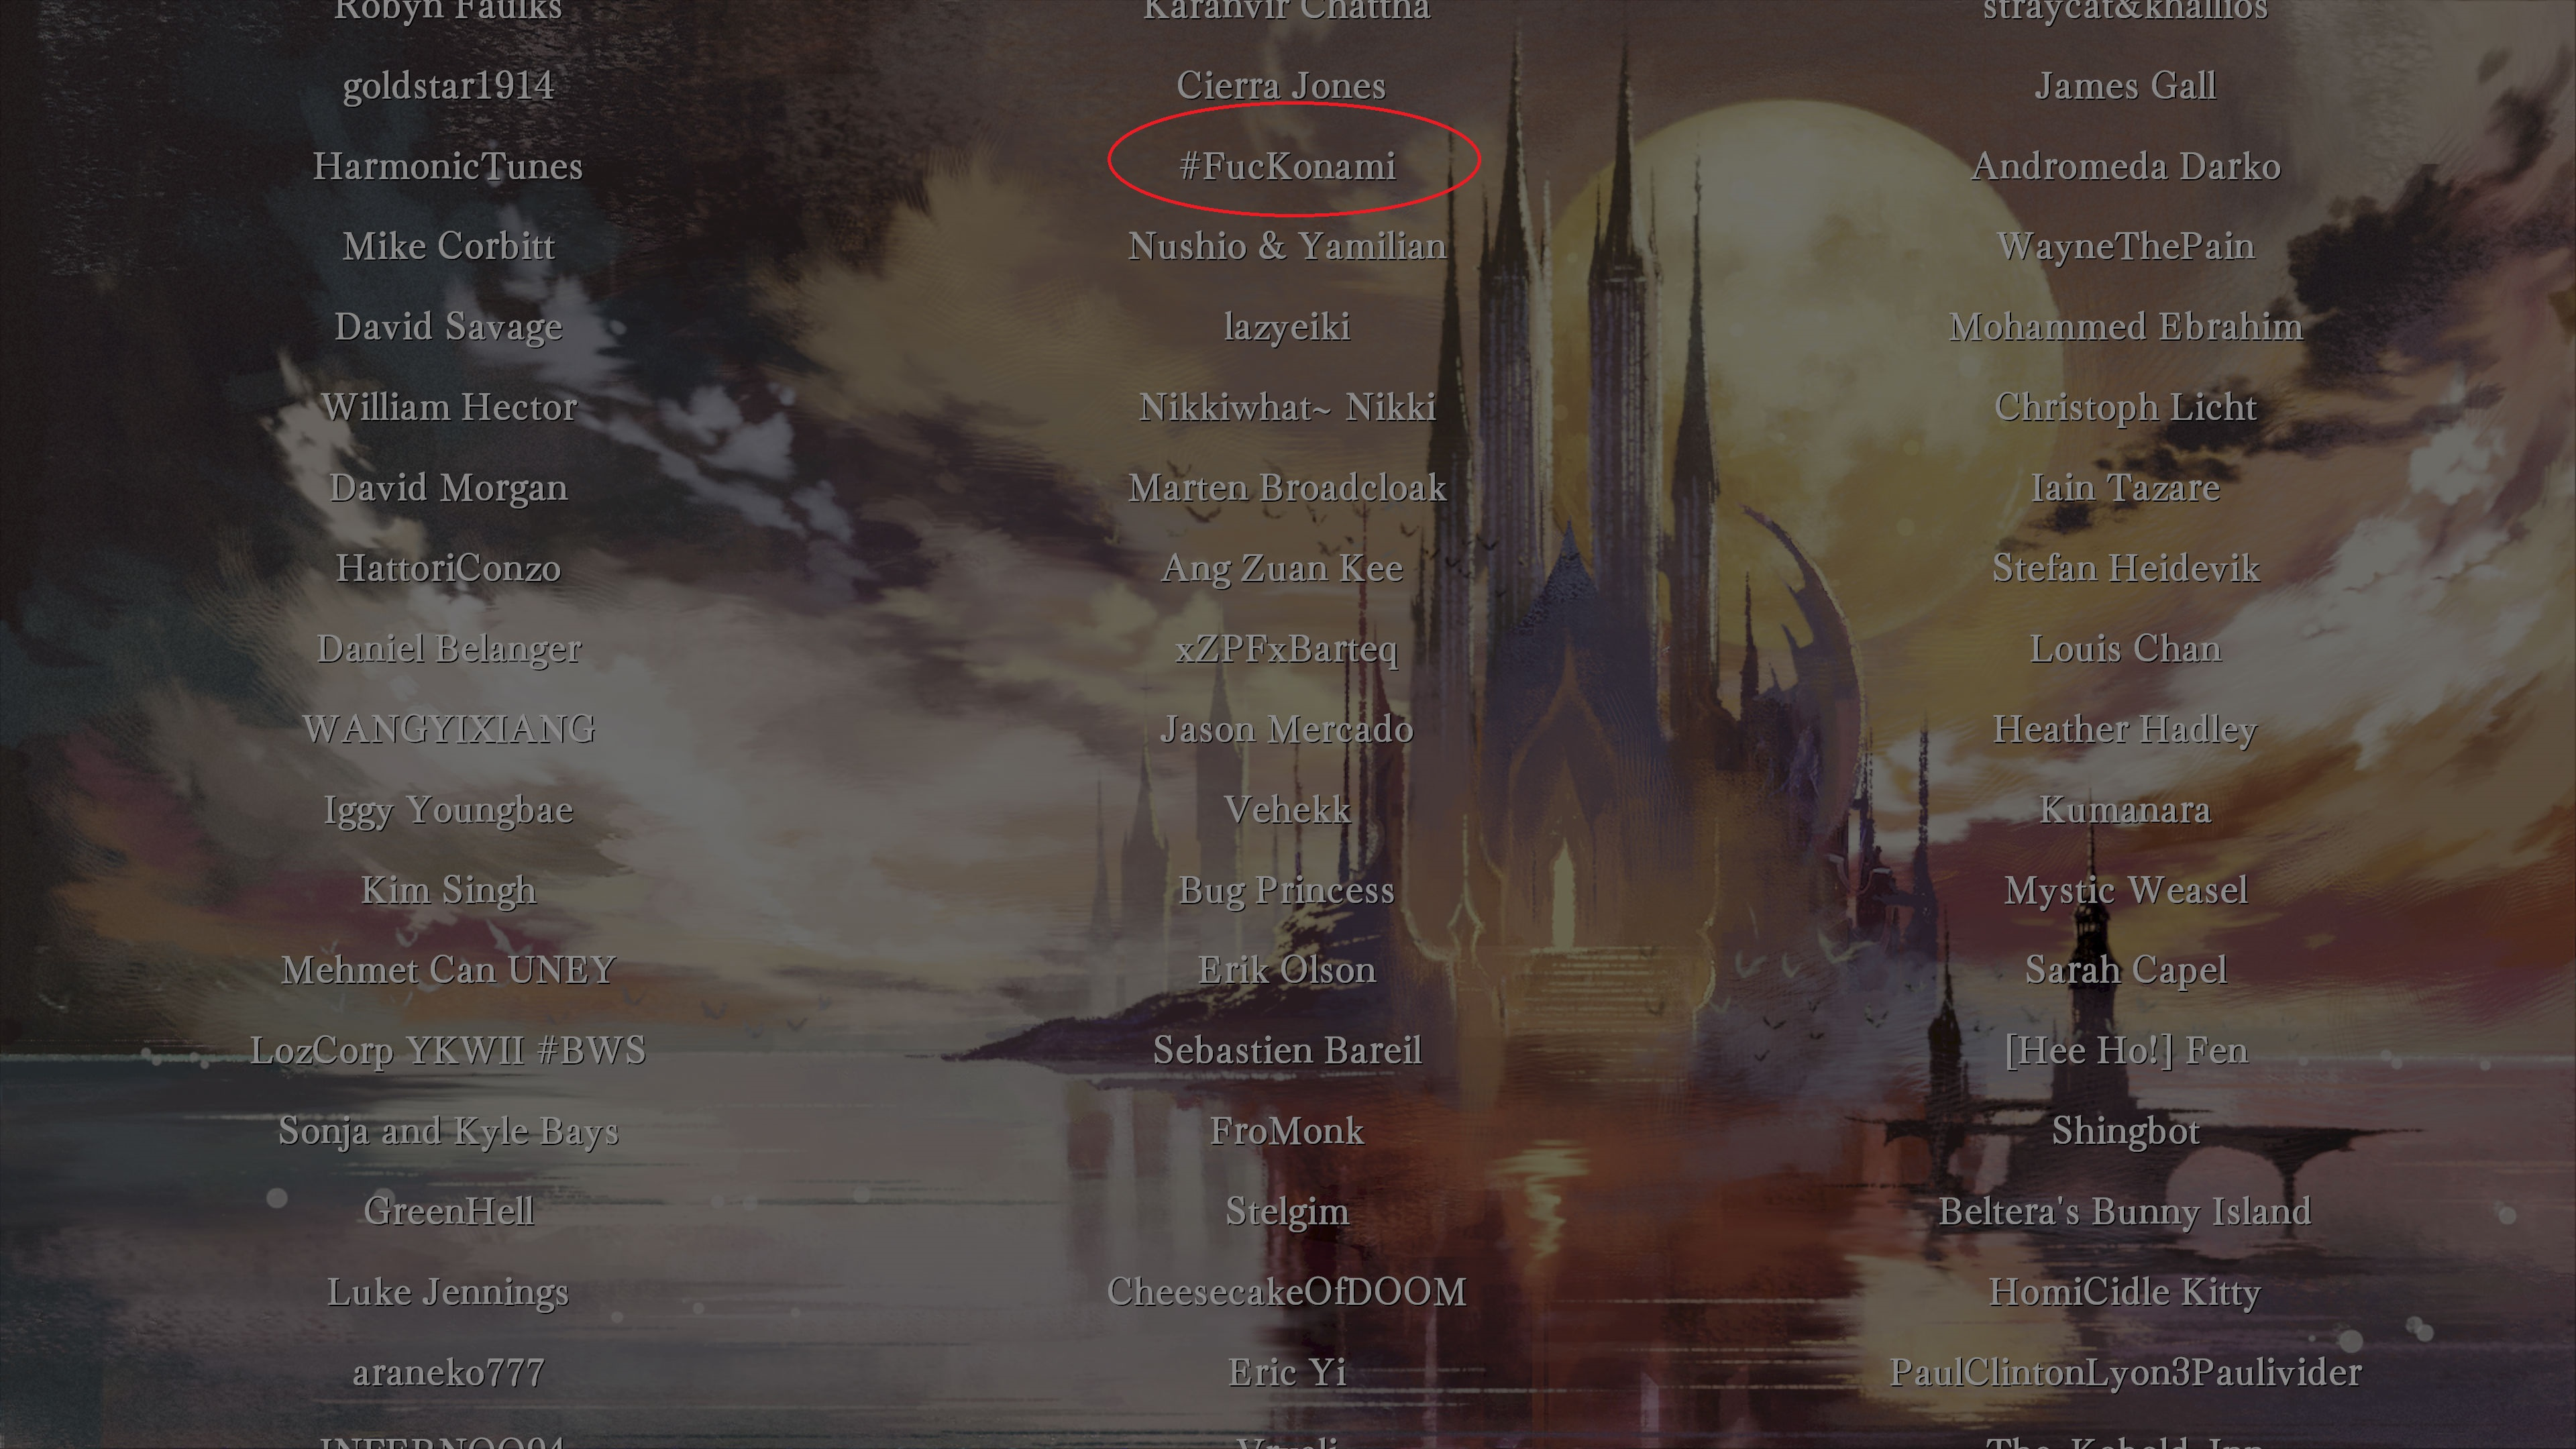 A Few Choice Names Snuck Into The Official Bloodstained Credits